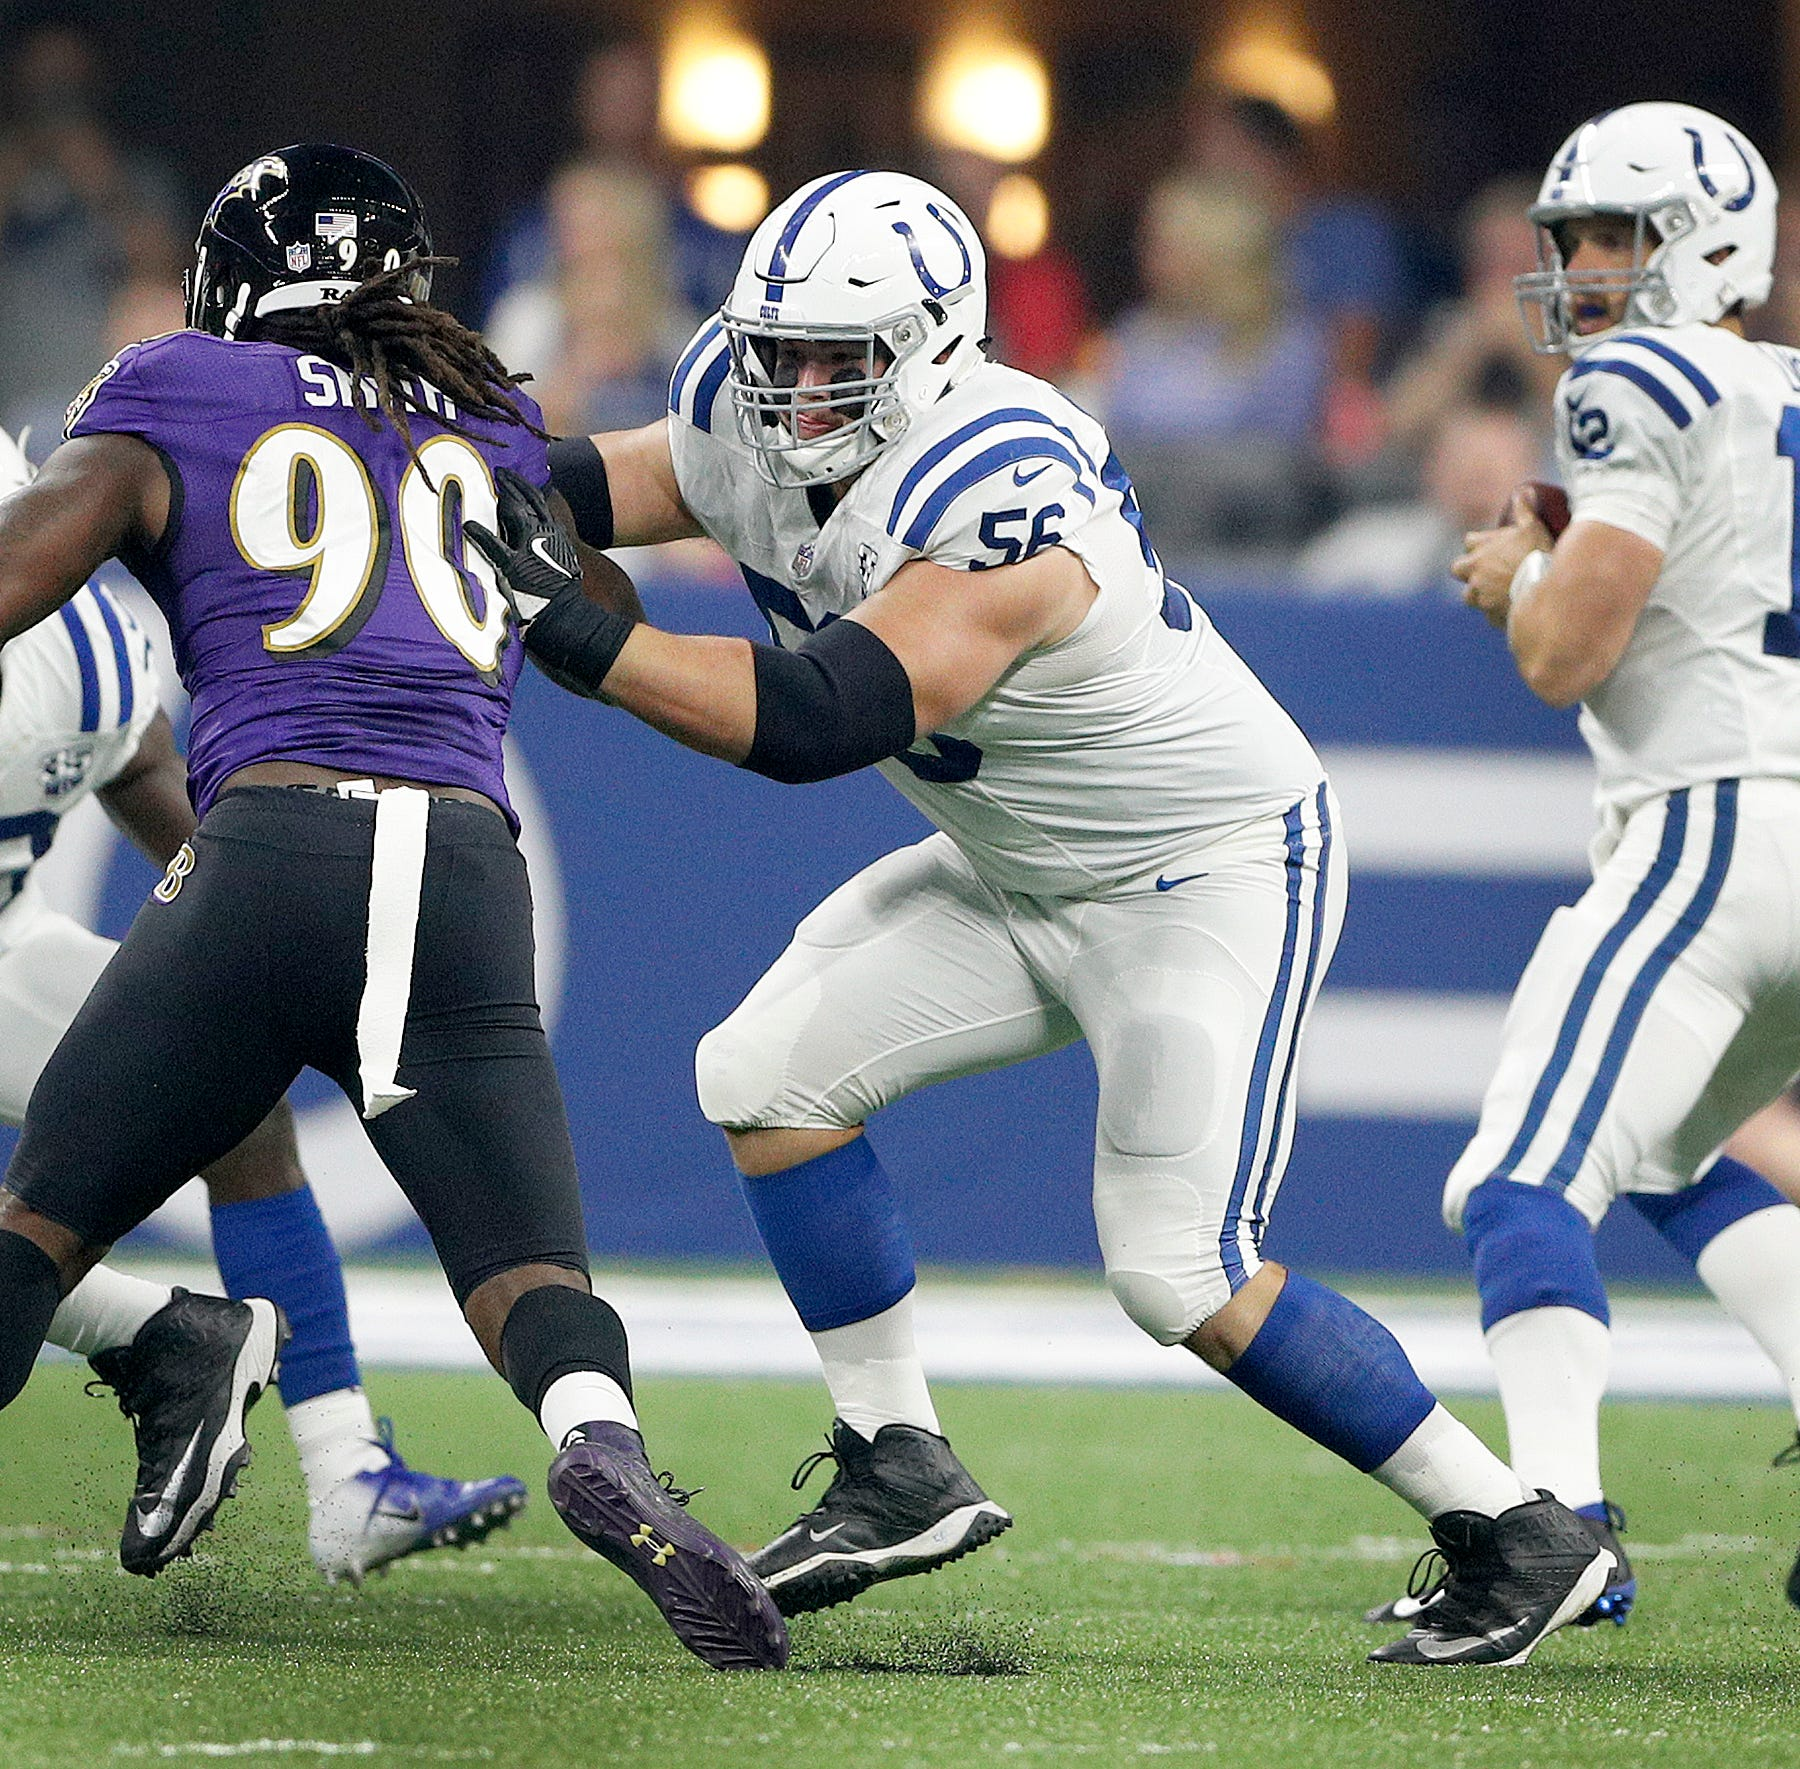 Insider: Colts, Andrew Luck sloppy in preseason loss to Ravens